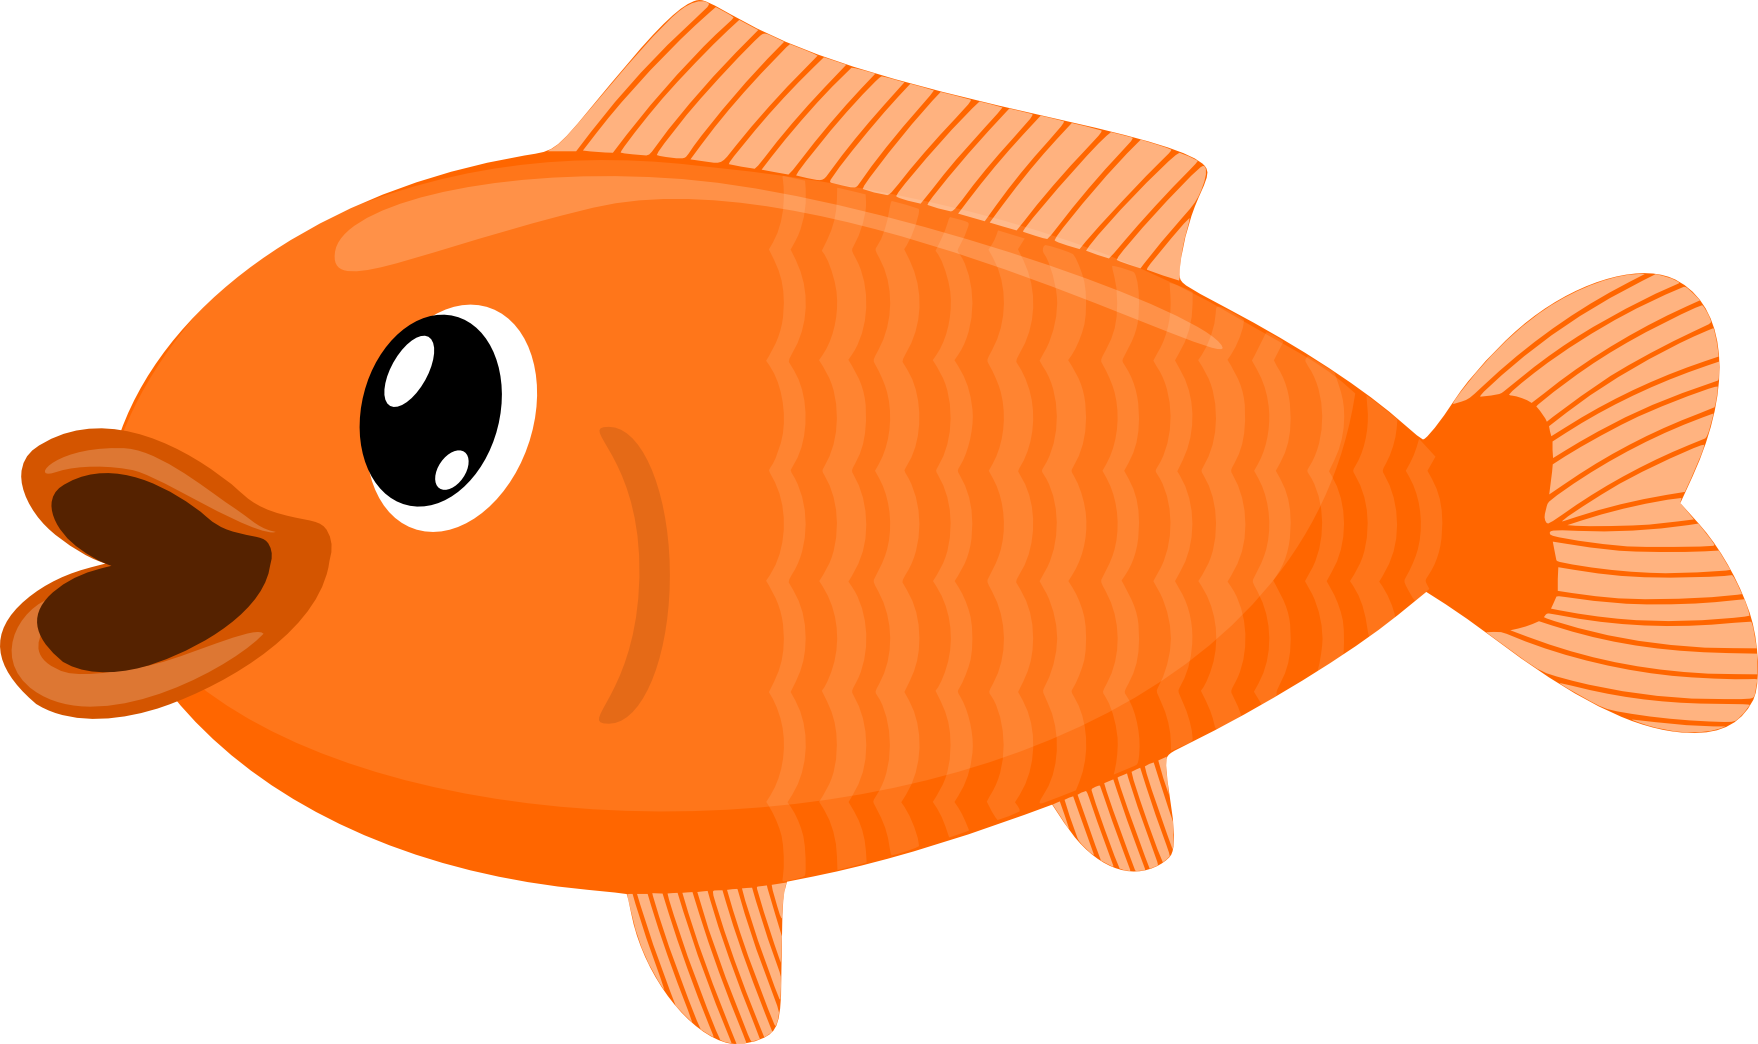 Clipart for fish png royalty free download Koi Fish Clipart at GetDrawings.com | Free for personal use Koi Fish ... png royalty free download